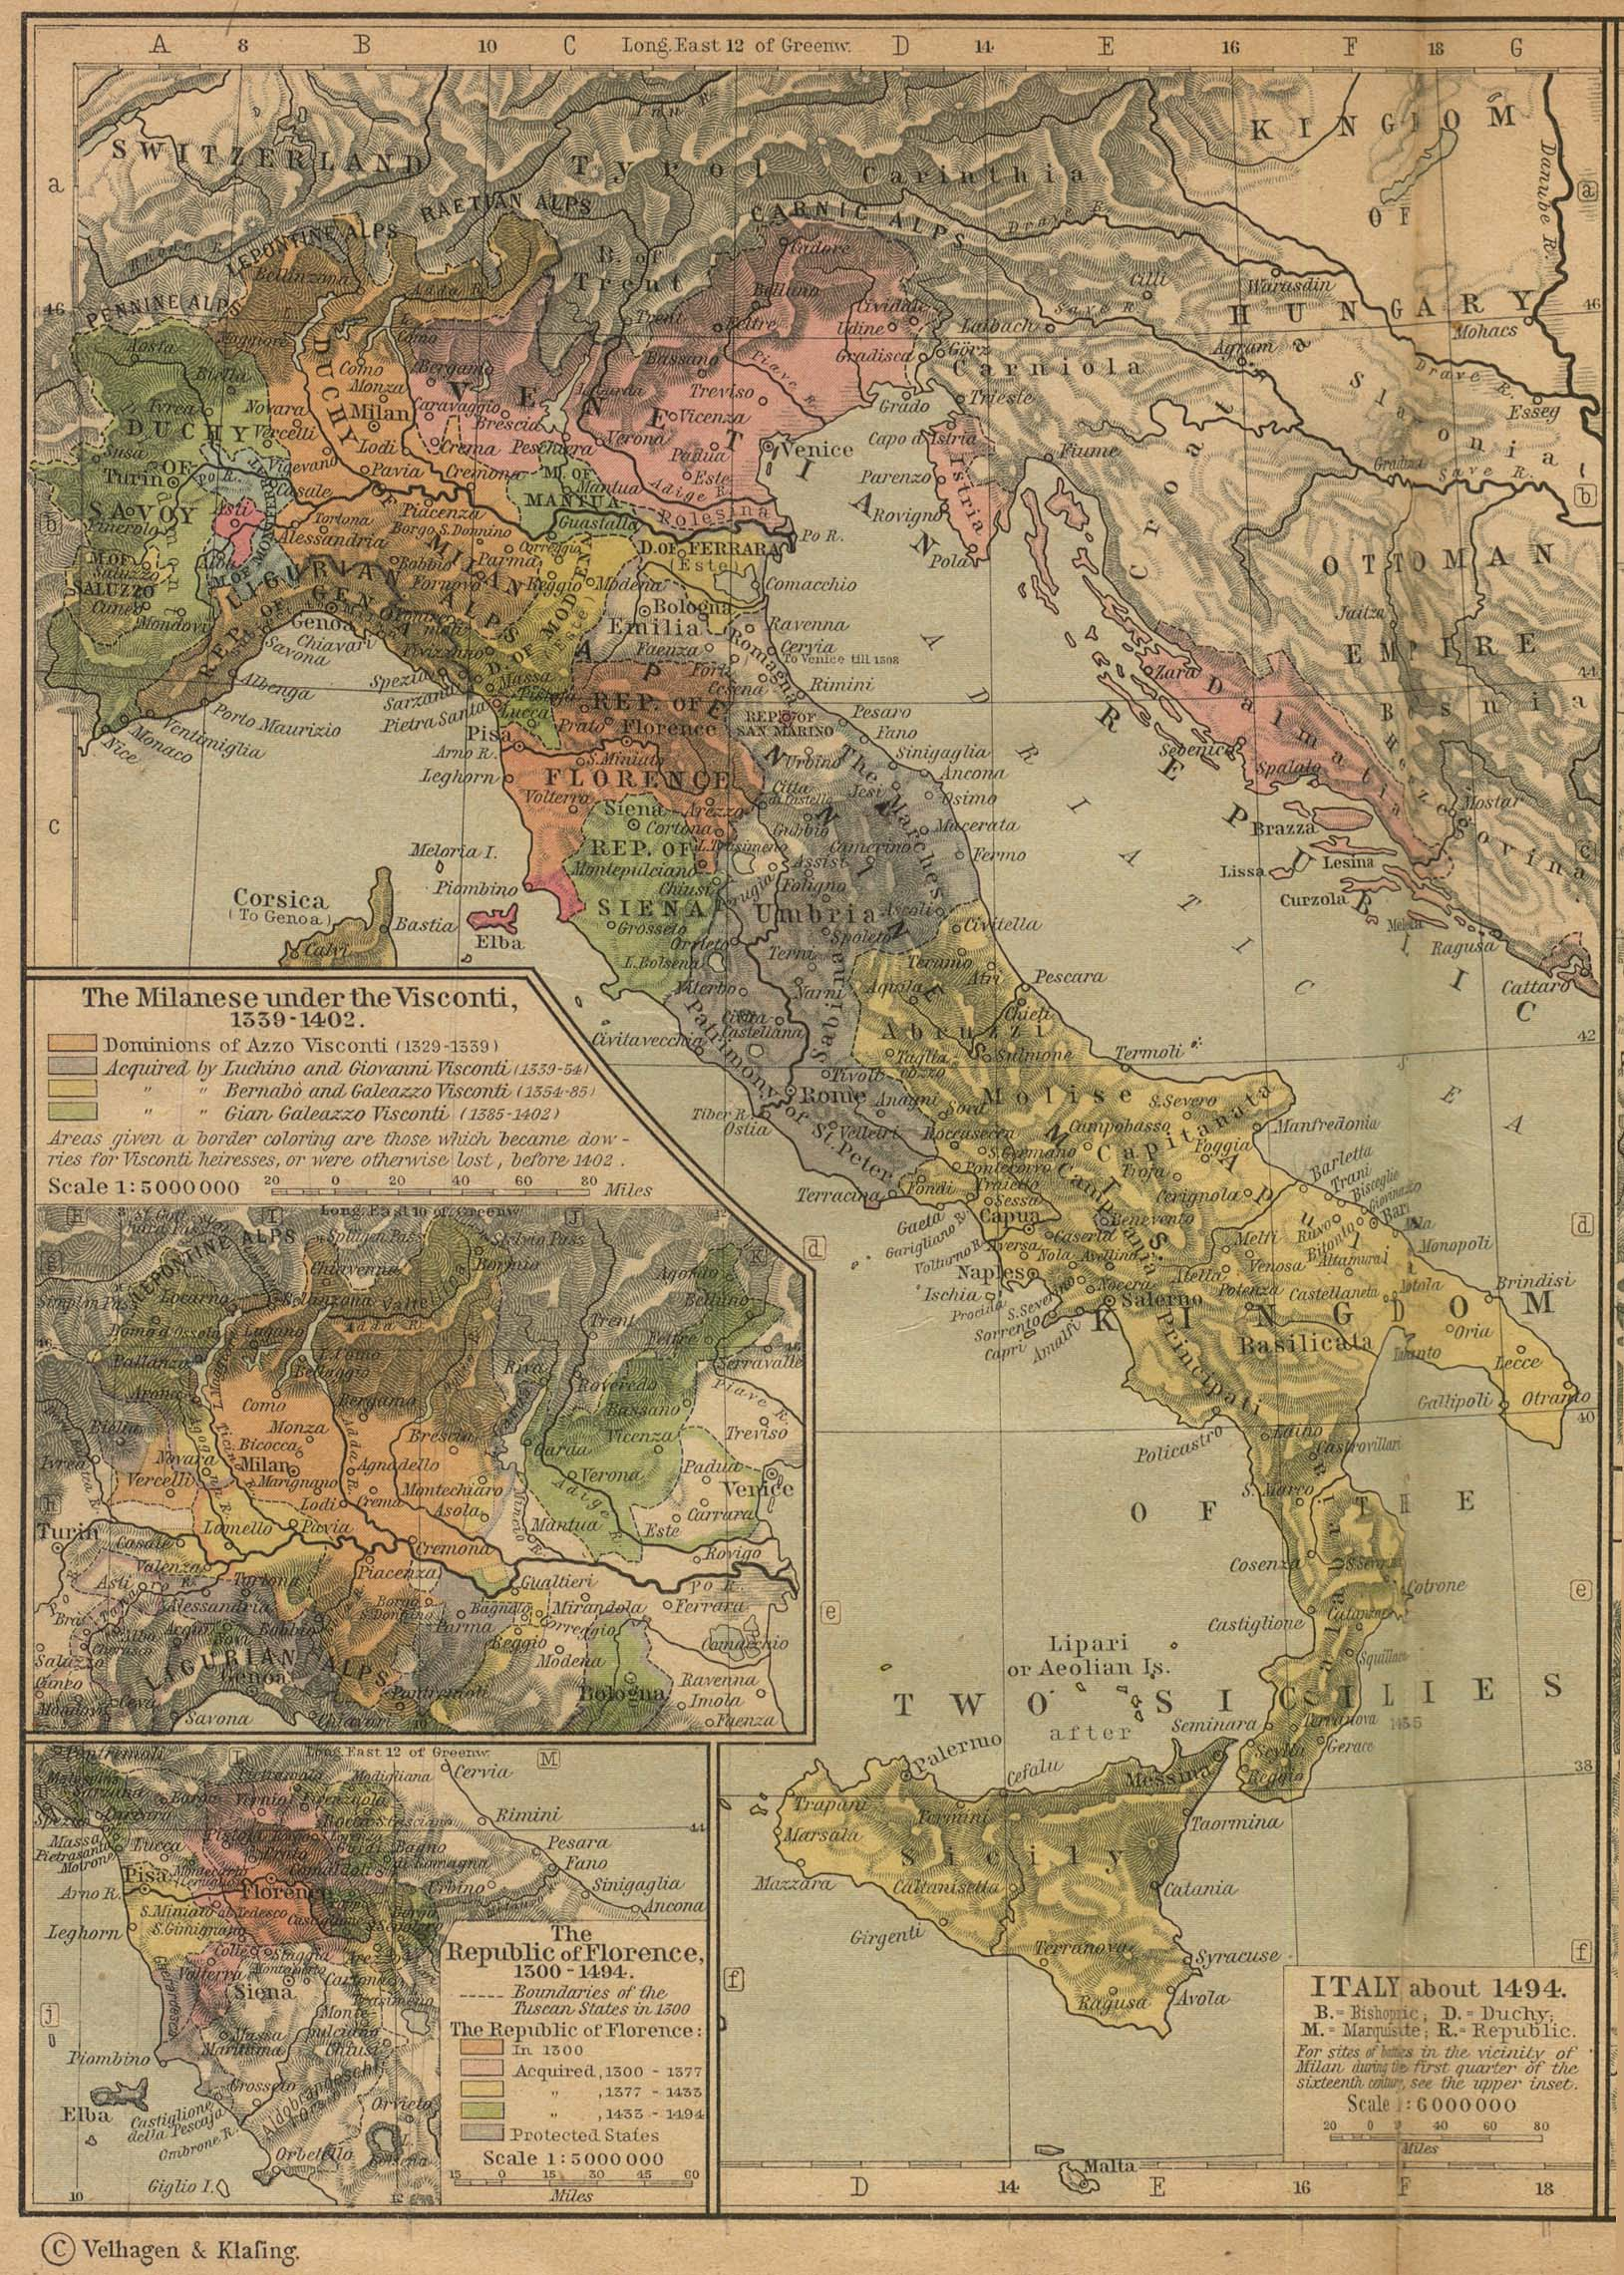 Map of Italy About 1494